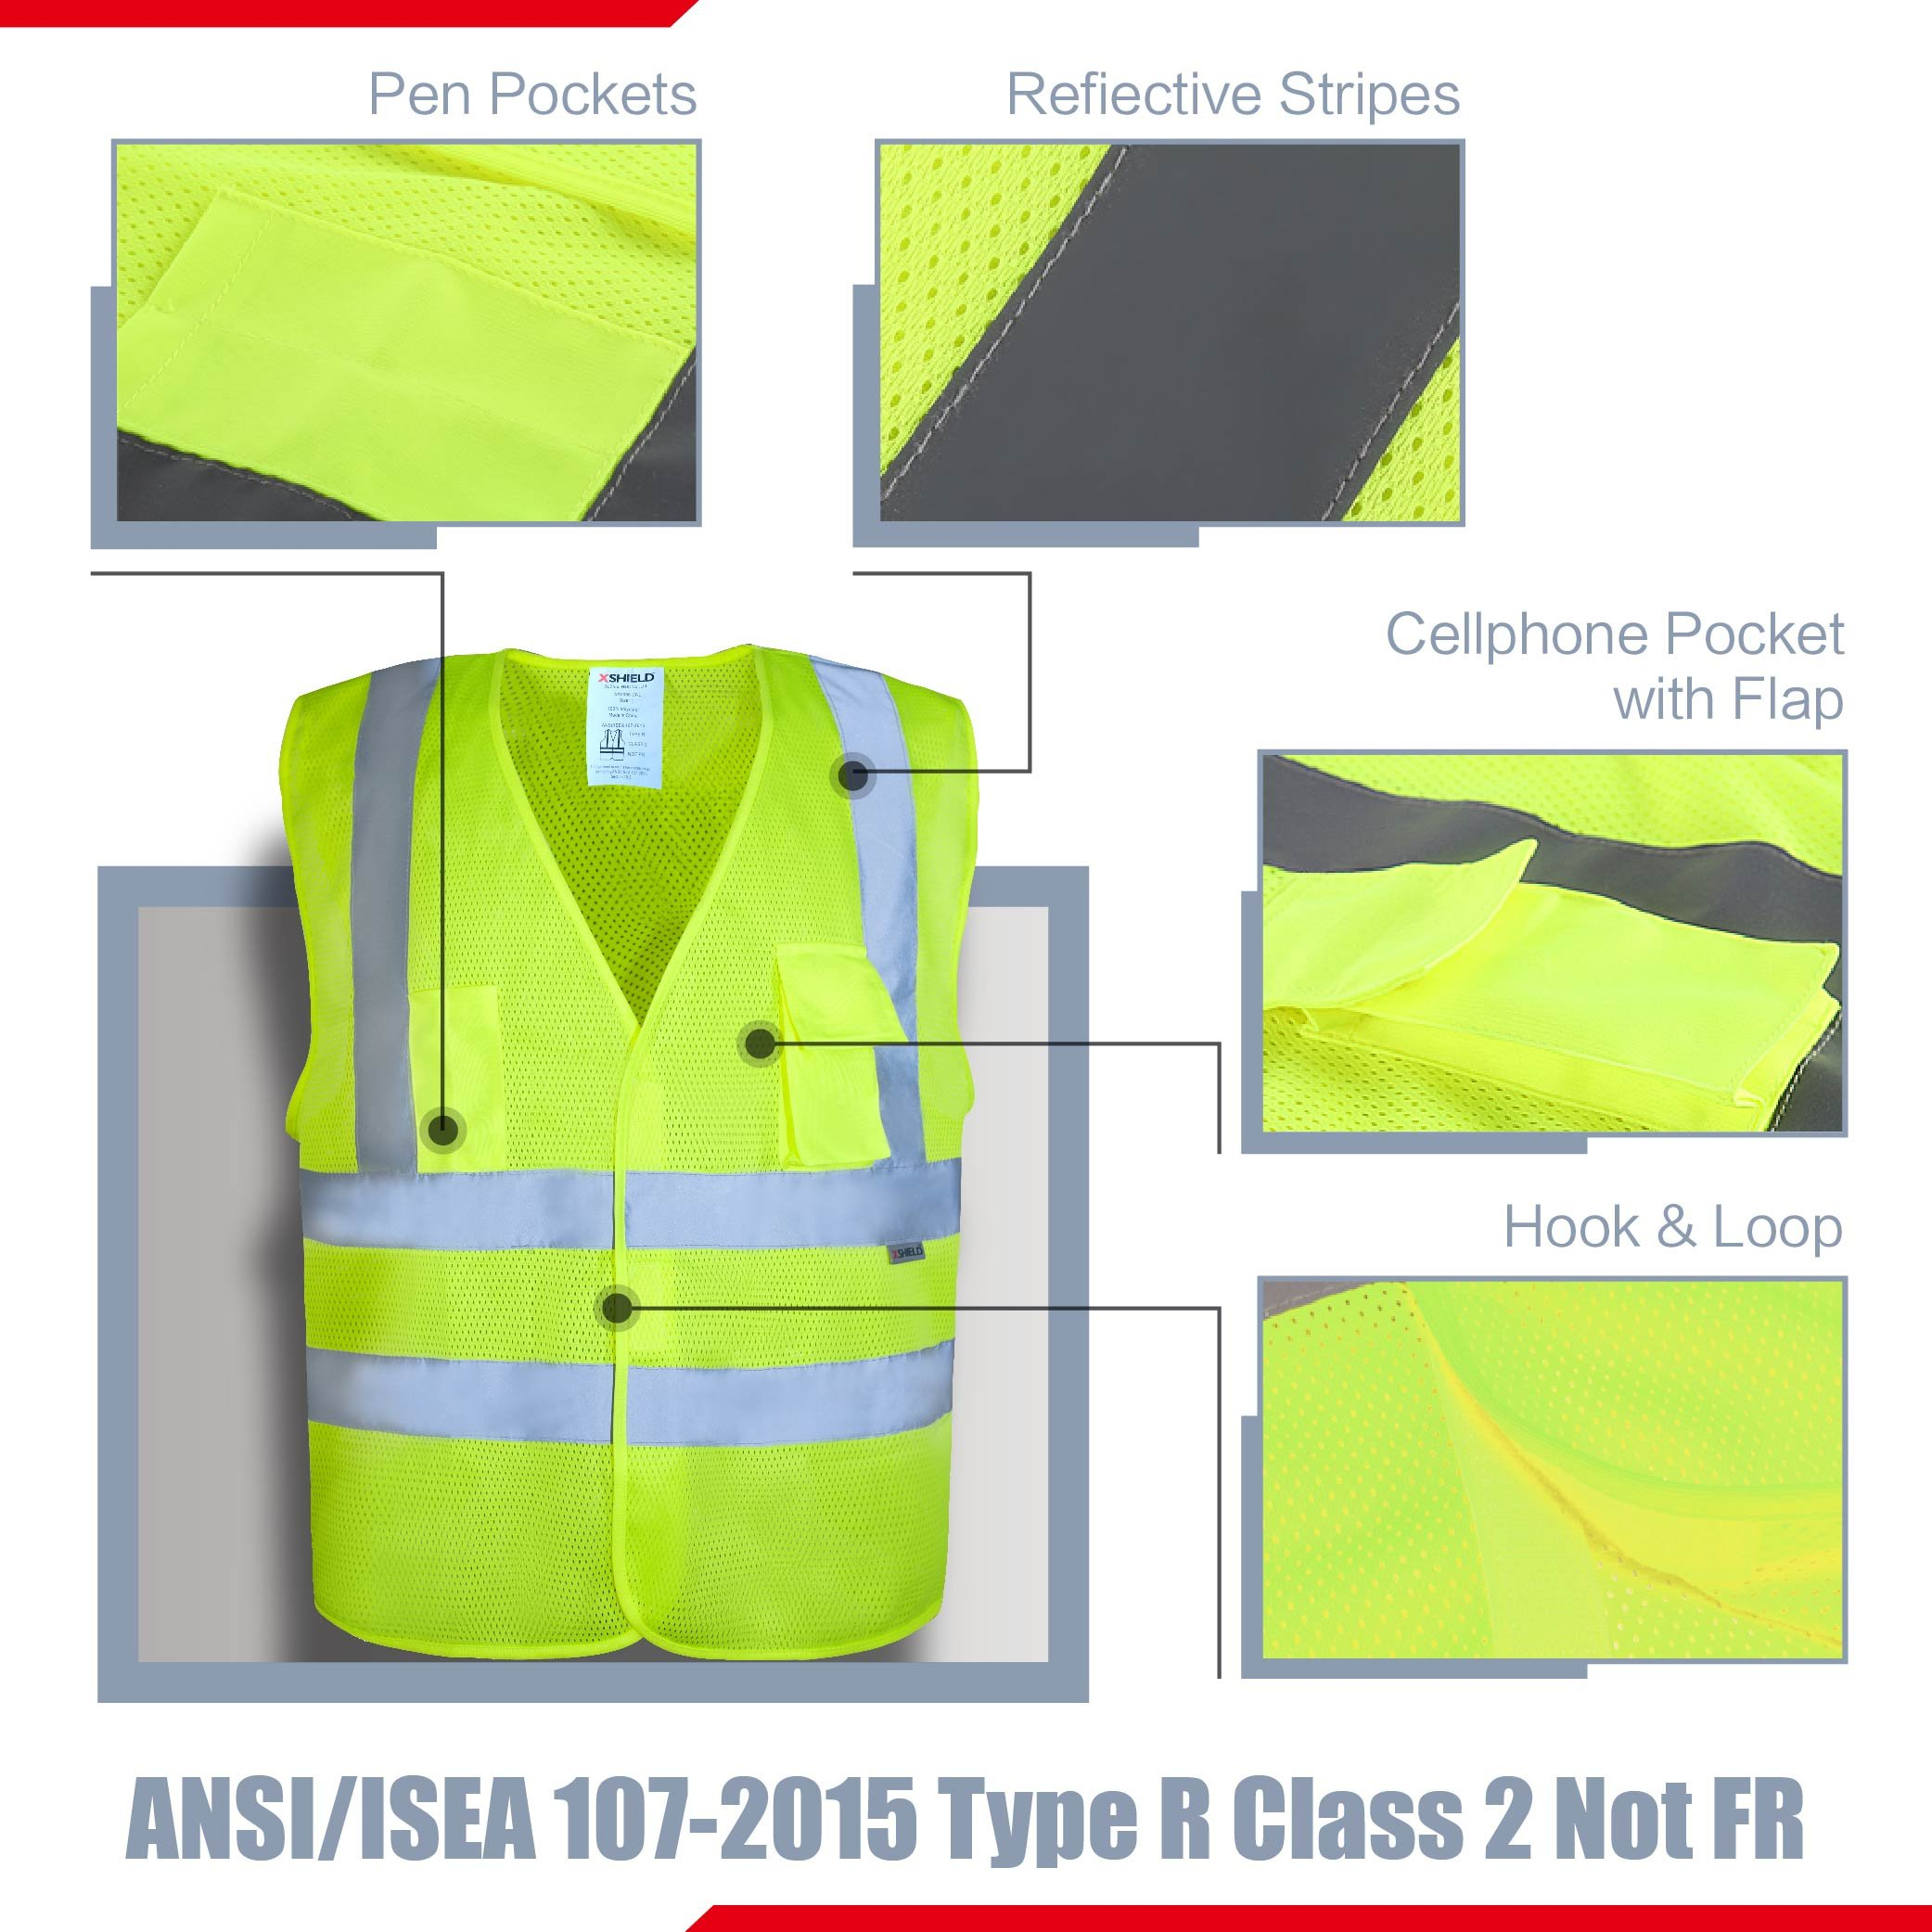 XSHIELD XS0006,High Visibility Mesh Safety Vest with Silver Stripe,ANSI/ISEA 107-2015 Type R Class2 Not FR,Pack of 5 (XL, Yellow) by X-Shield (Image #2)